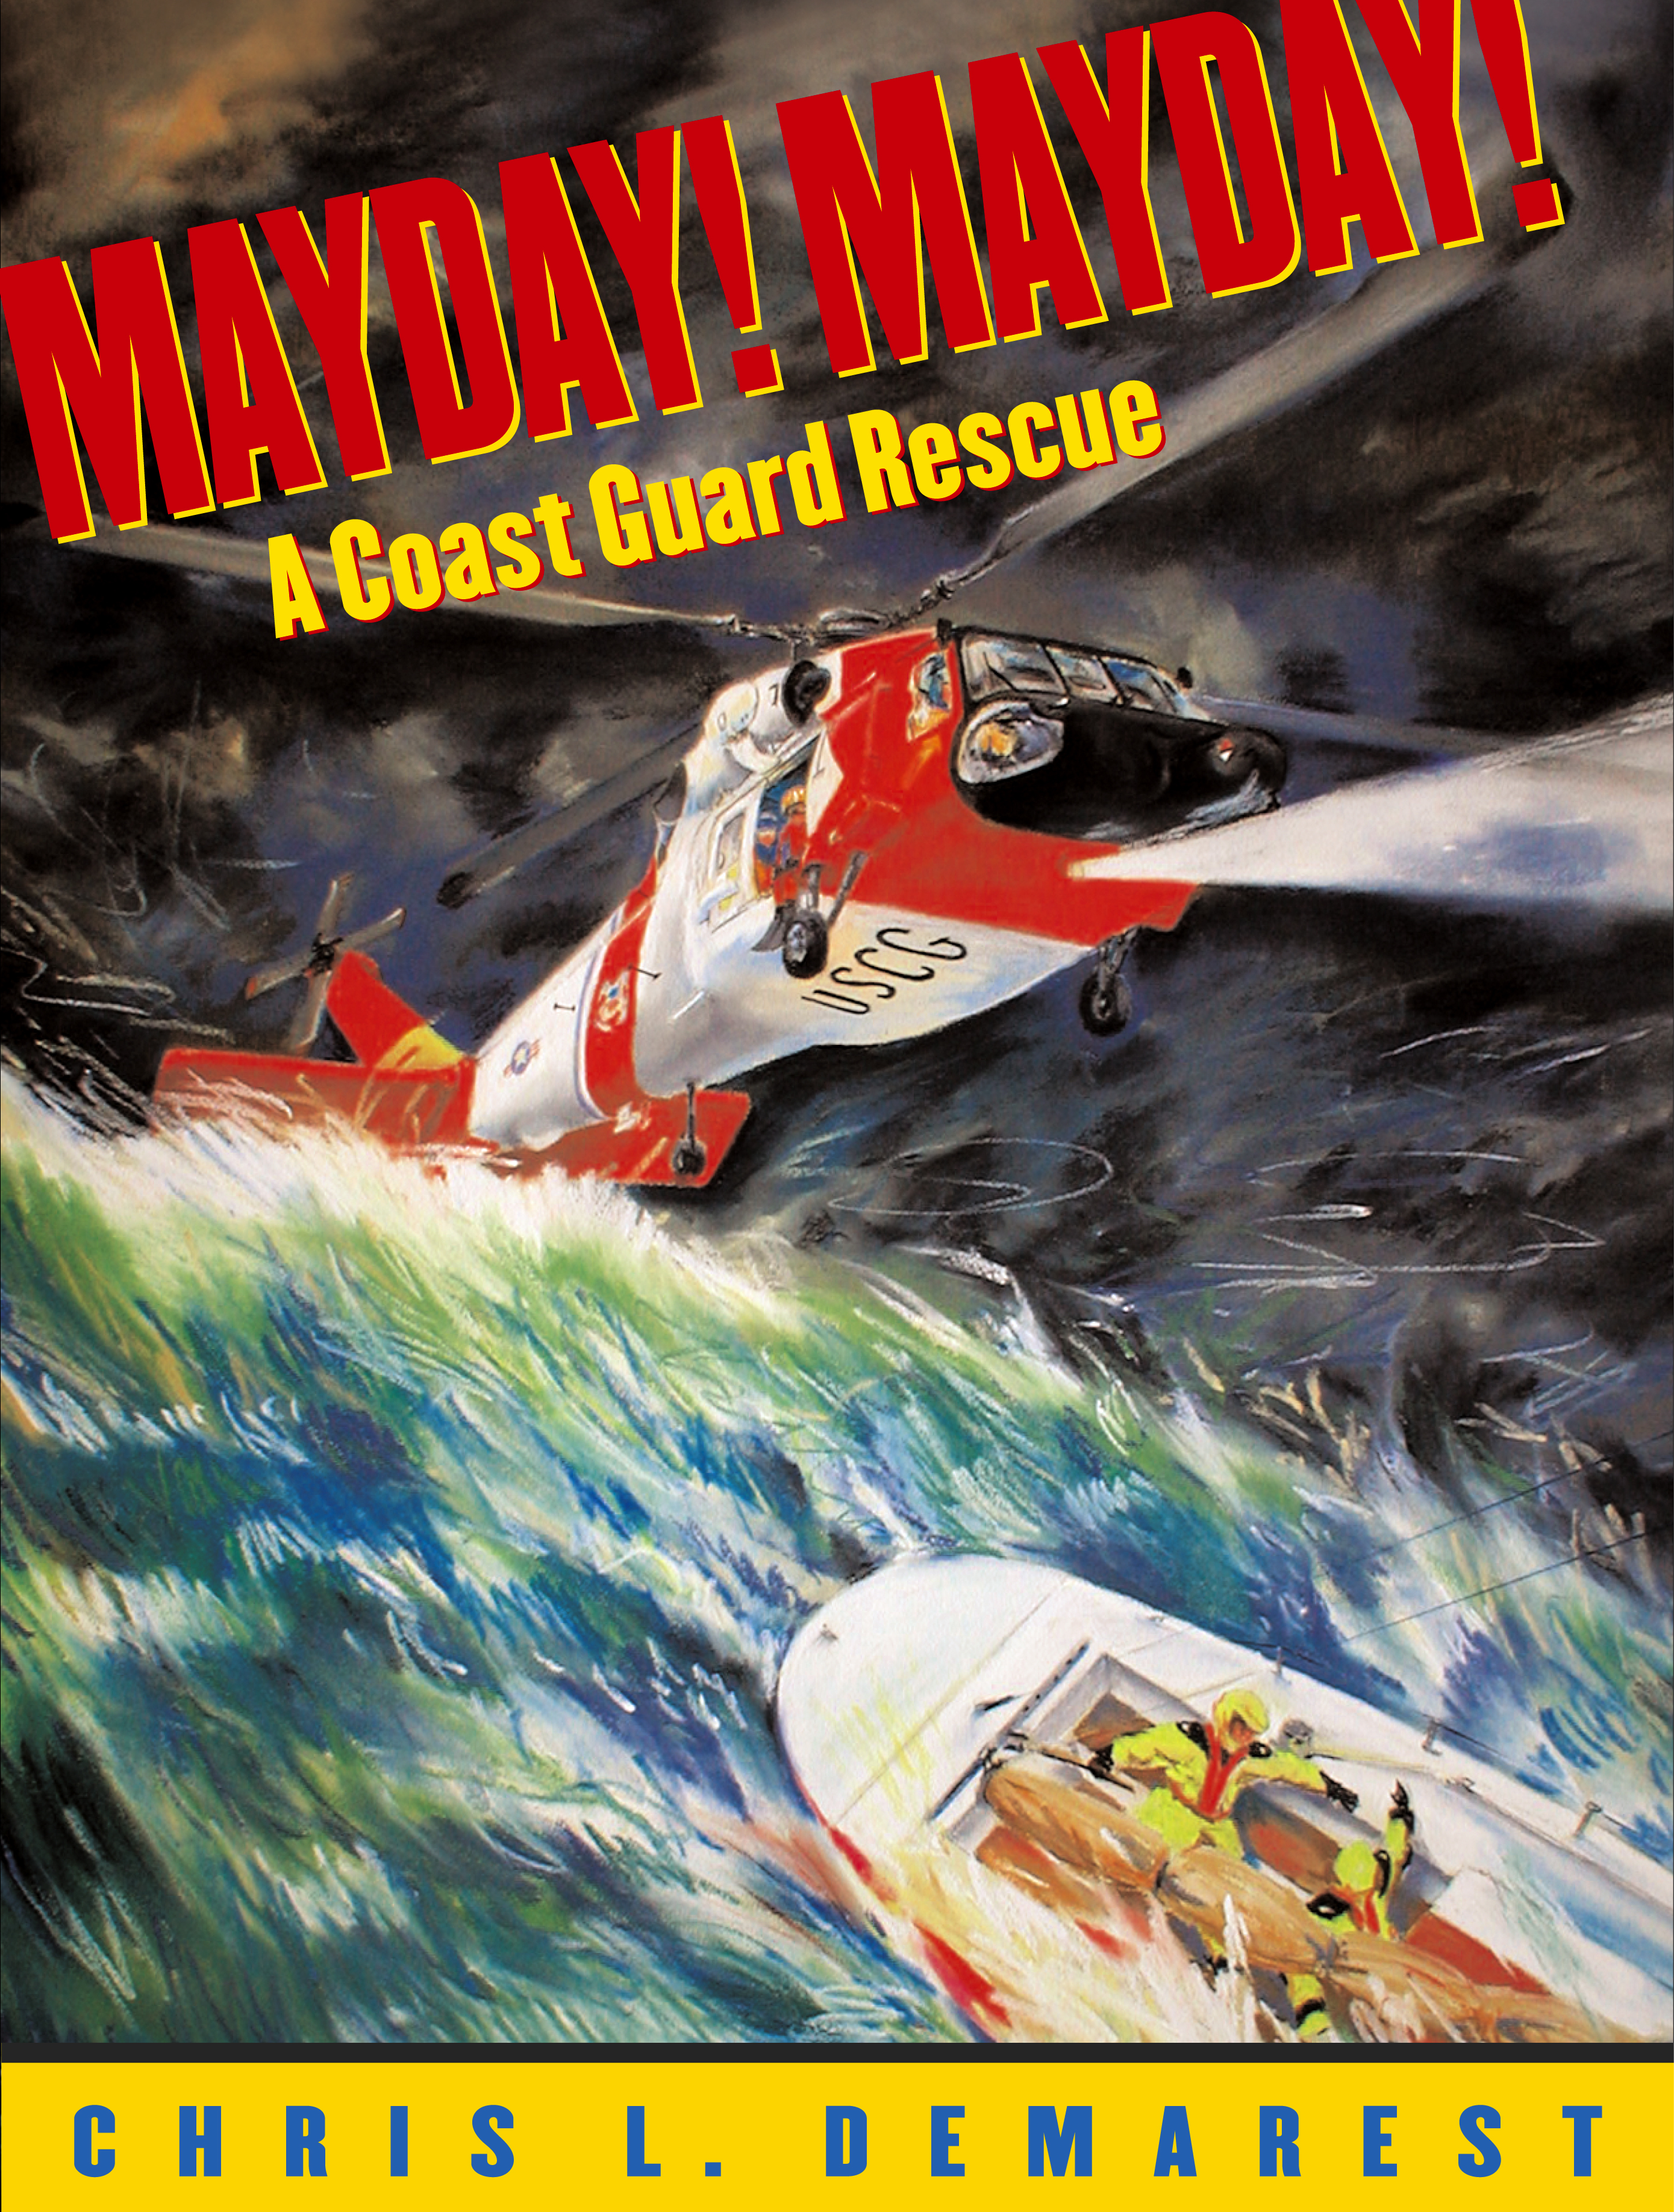 Mayday! Mayday! | Book by Chris L. Demarest | Official Publisher ...